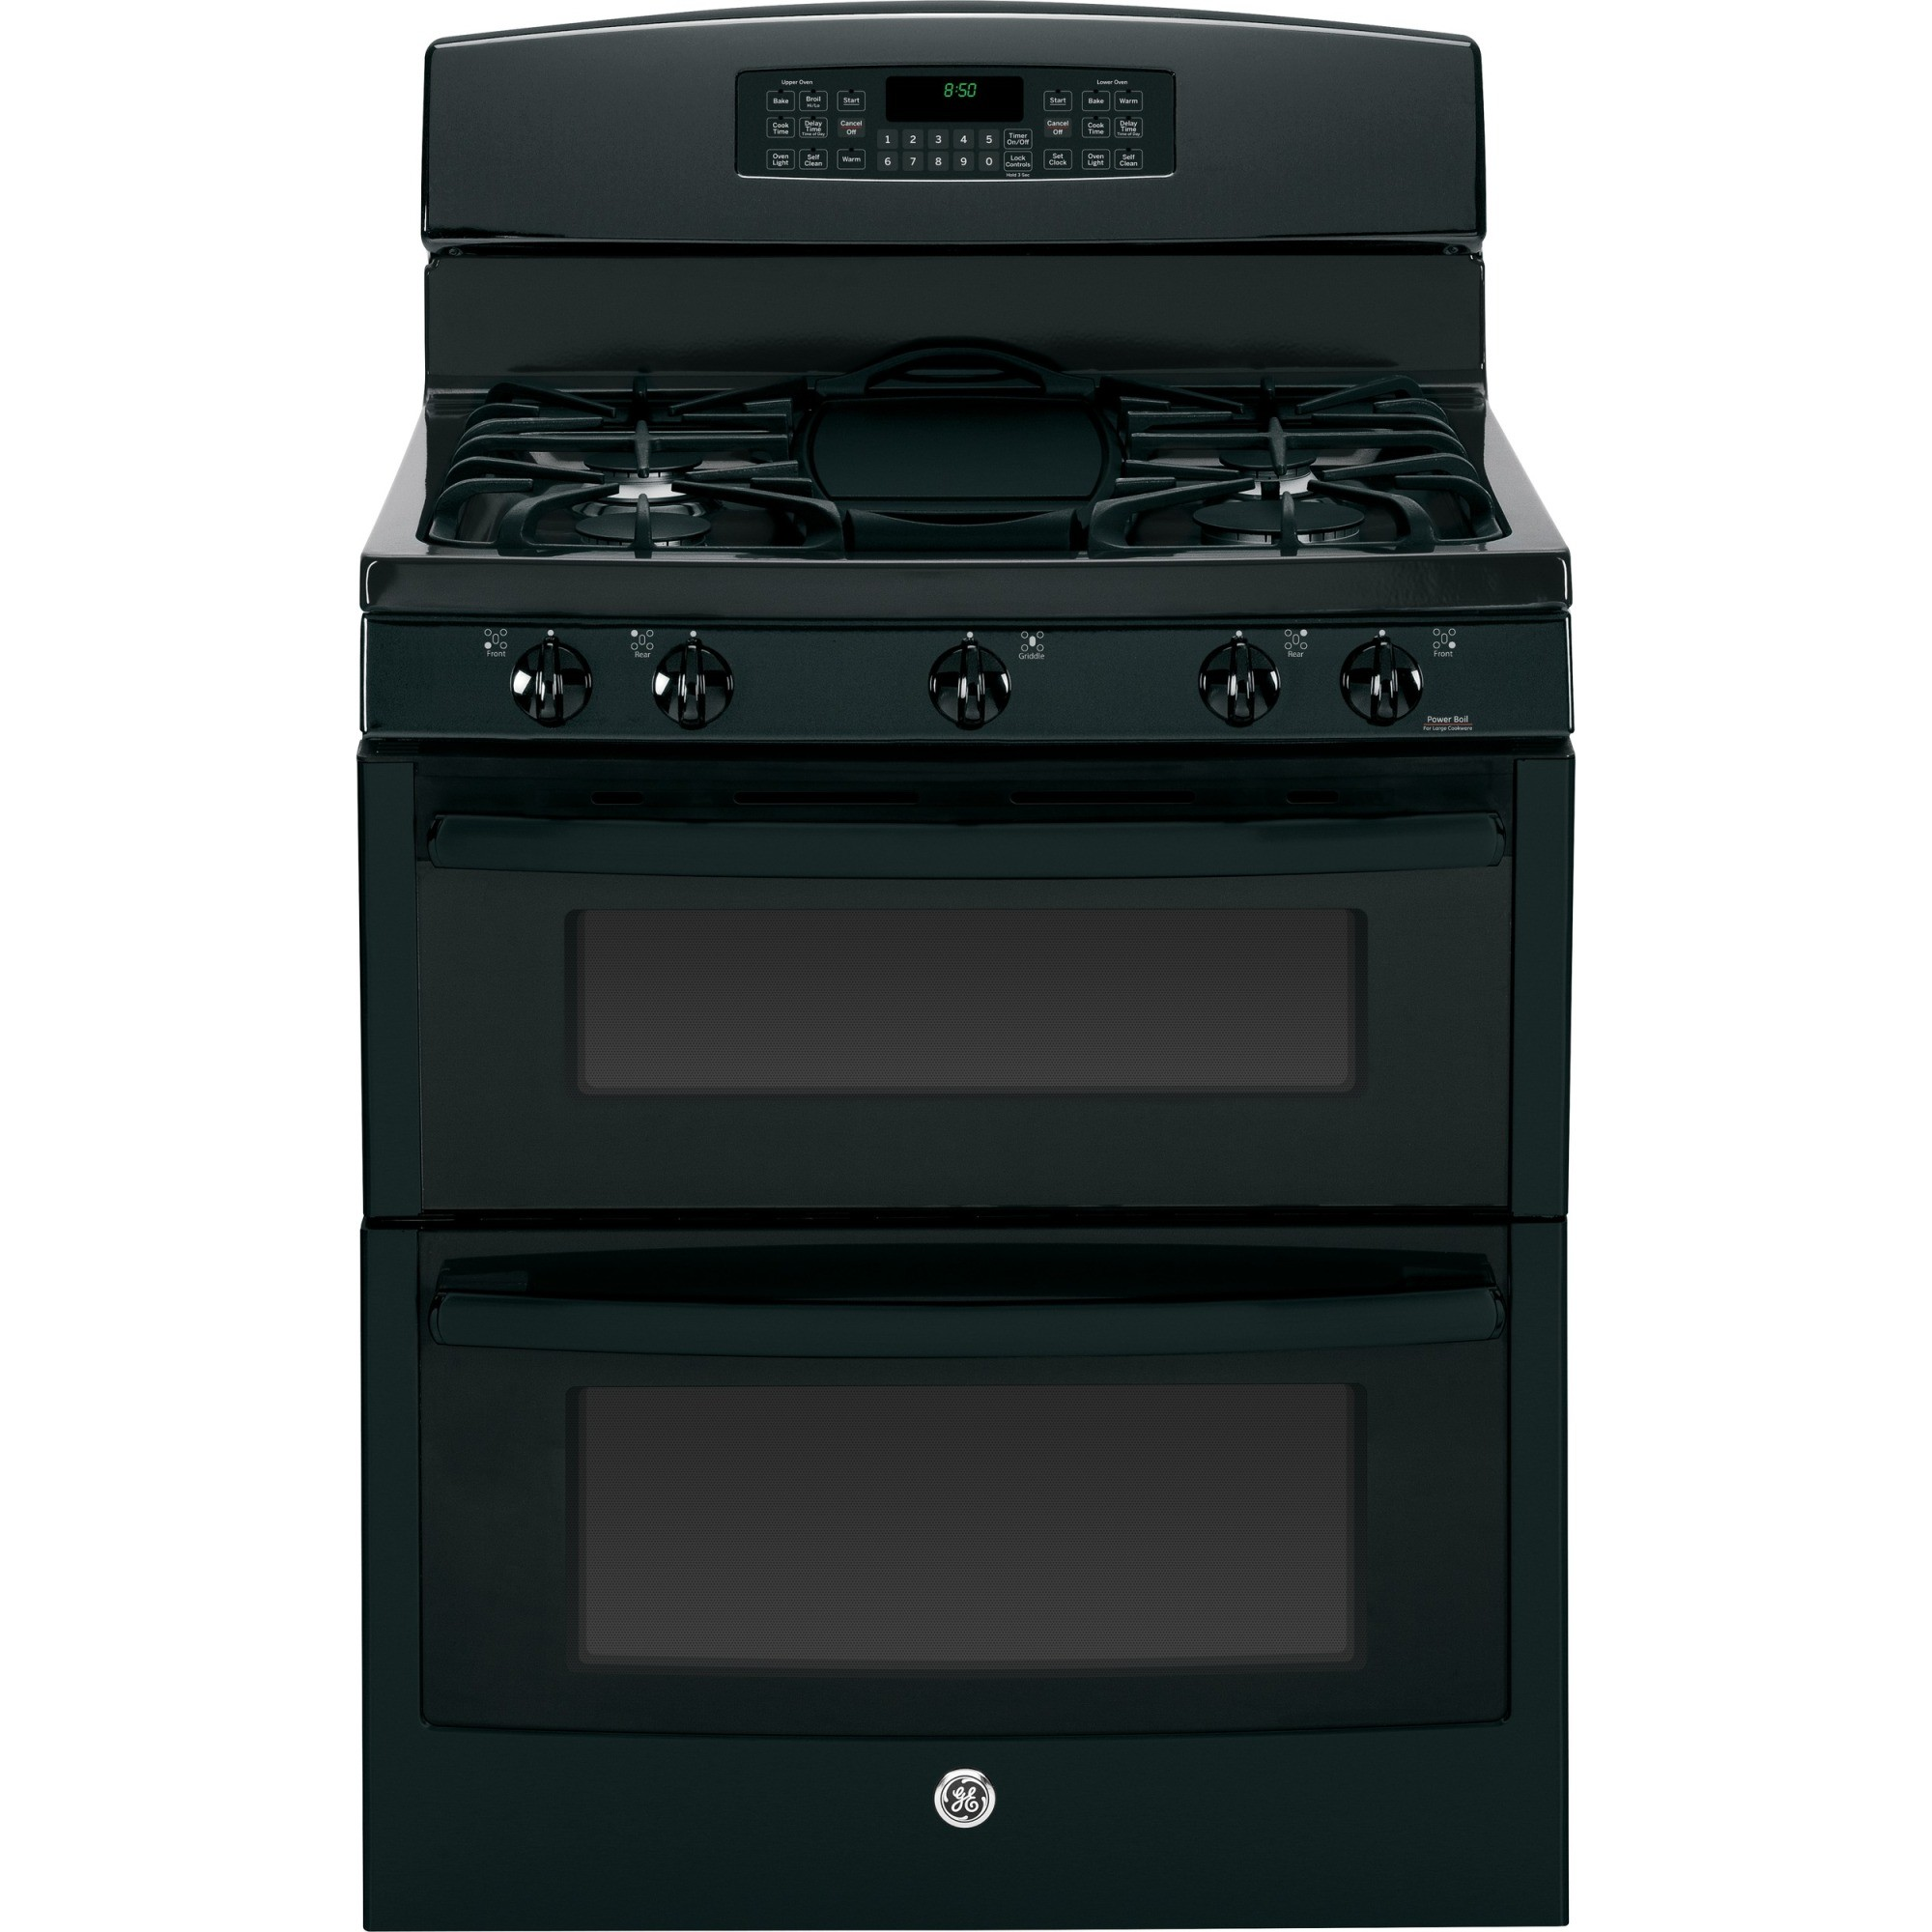 Jgb850defbb Ge 30 Free Standing Gas Double Oven Range